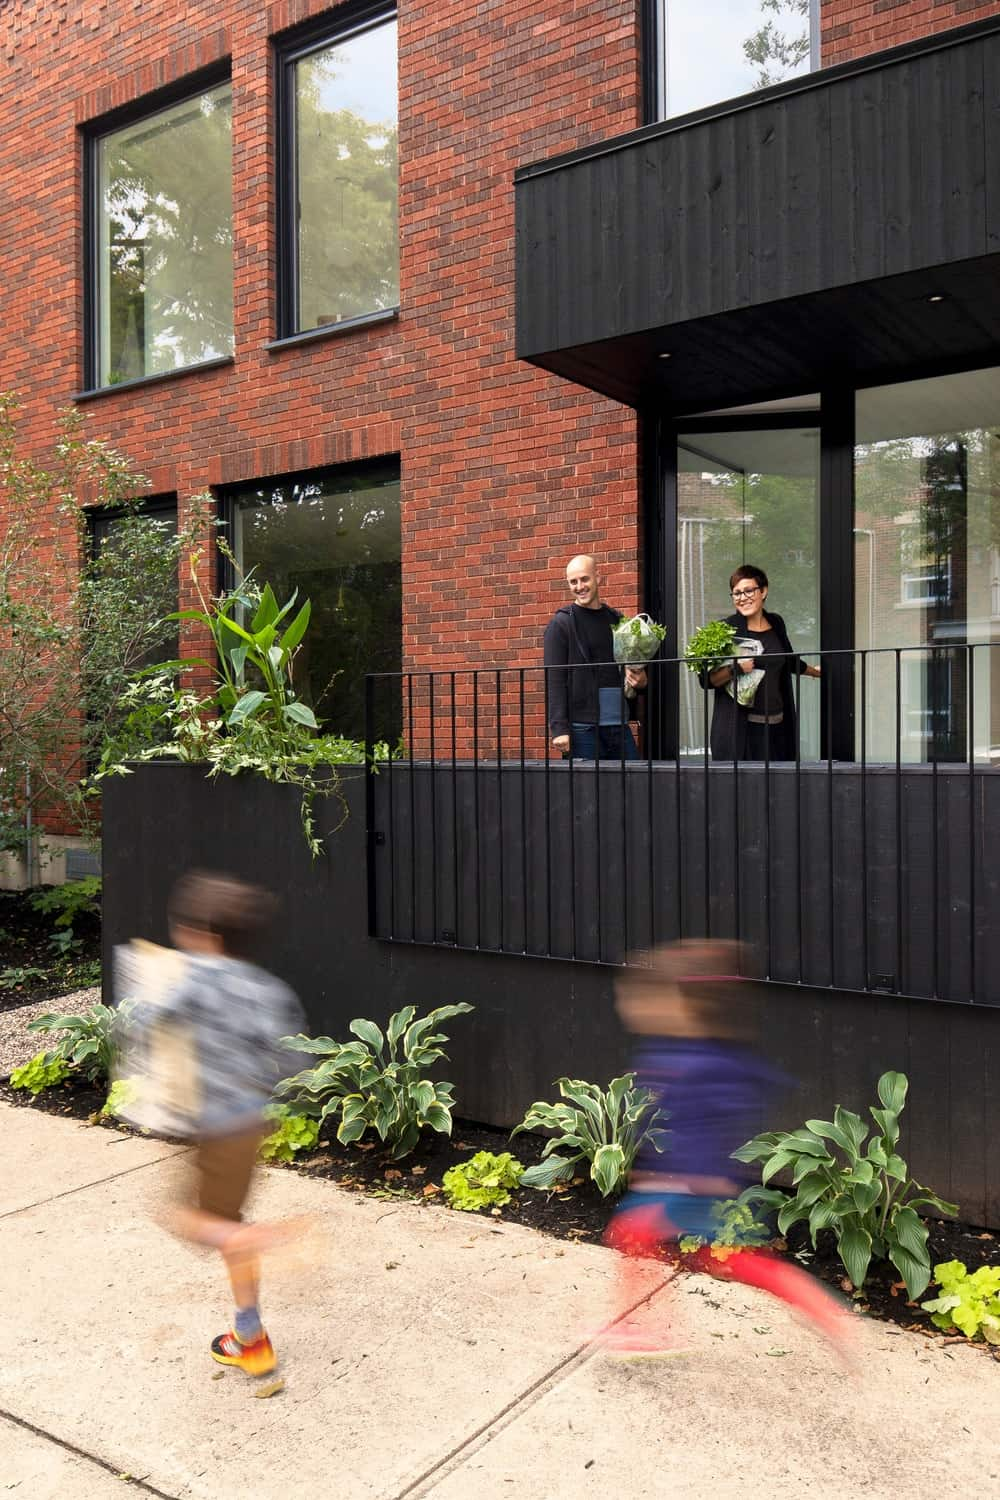 This outdoor view of the house shows the balcony coated by stylish black color. Photo Credit: Maxime Brouillet